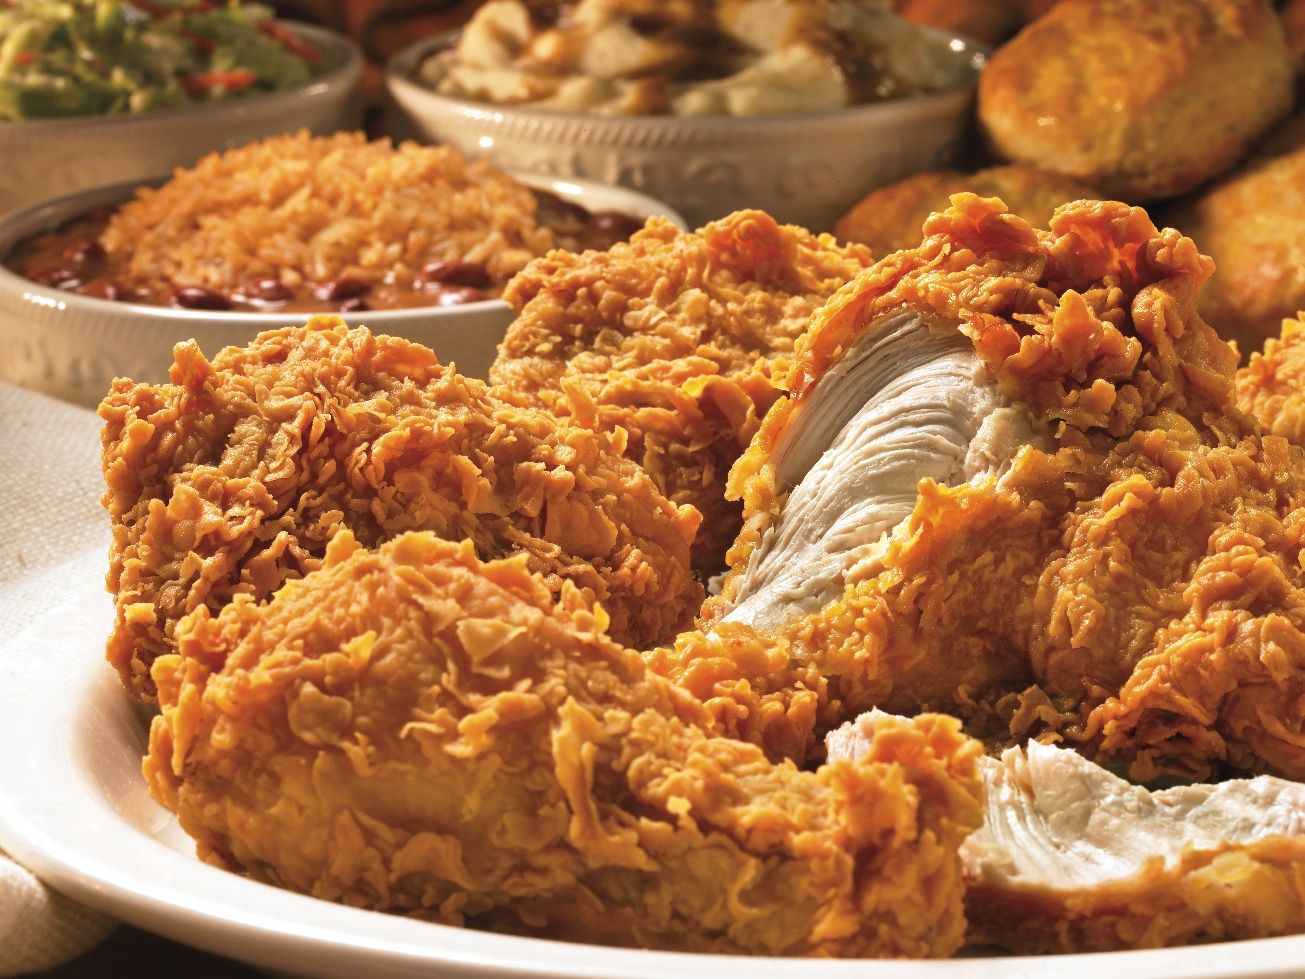 Popeyes Louisiana Kitchen Food popeyes louisiana kitchen greensboro, nc 27455 - yp